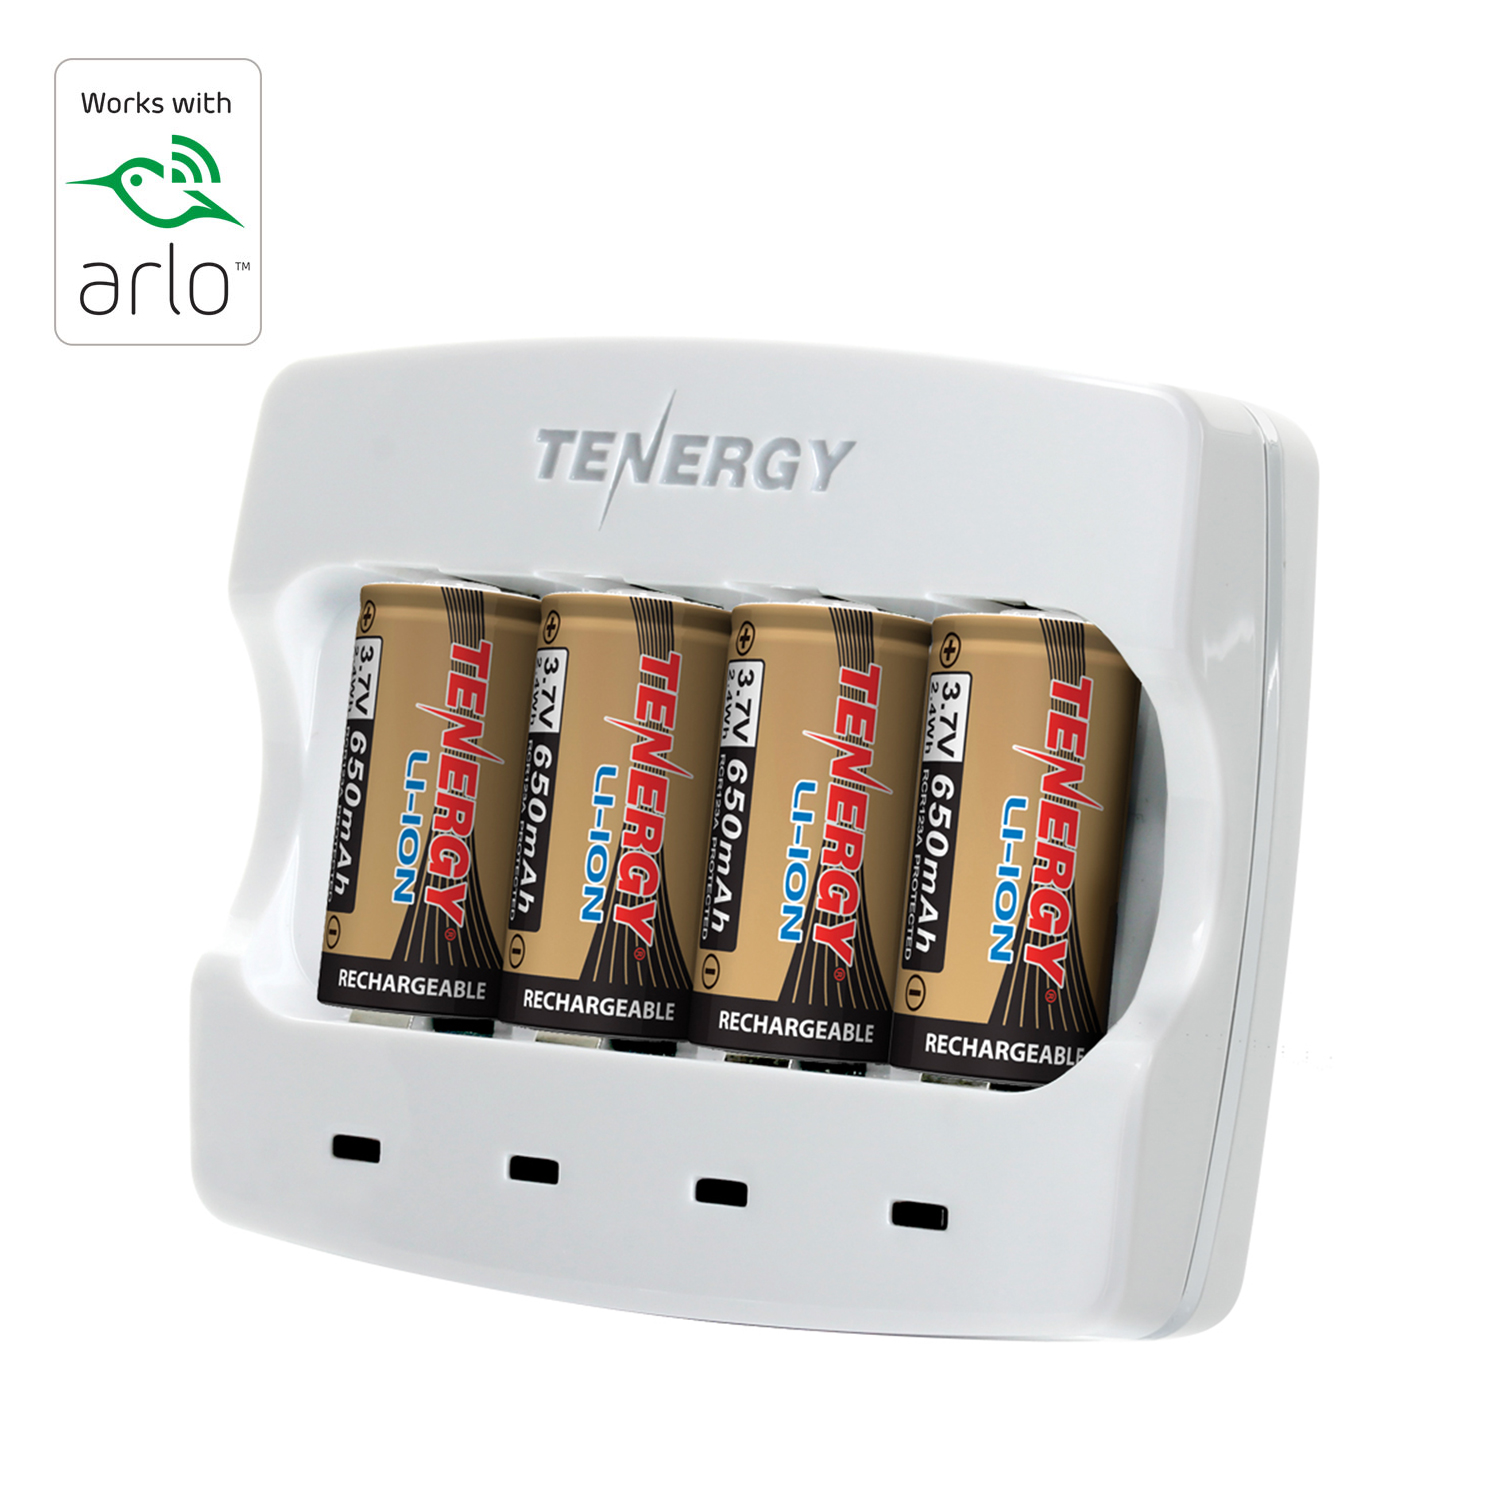 Tenergy CR123 Batteries & Charger (Rechargeable)